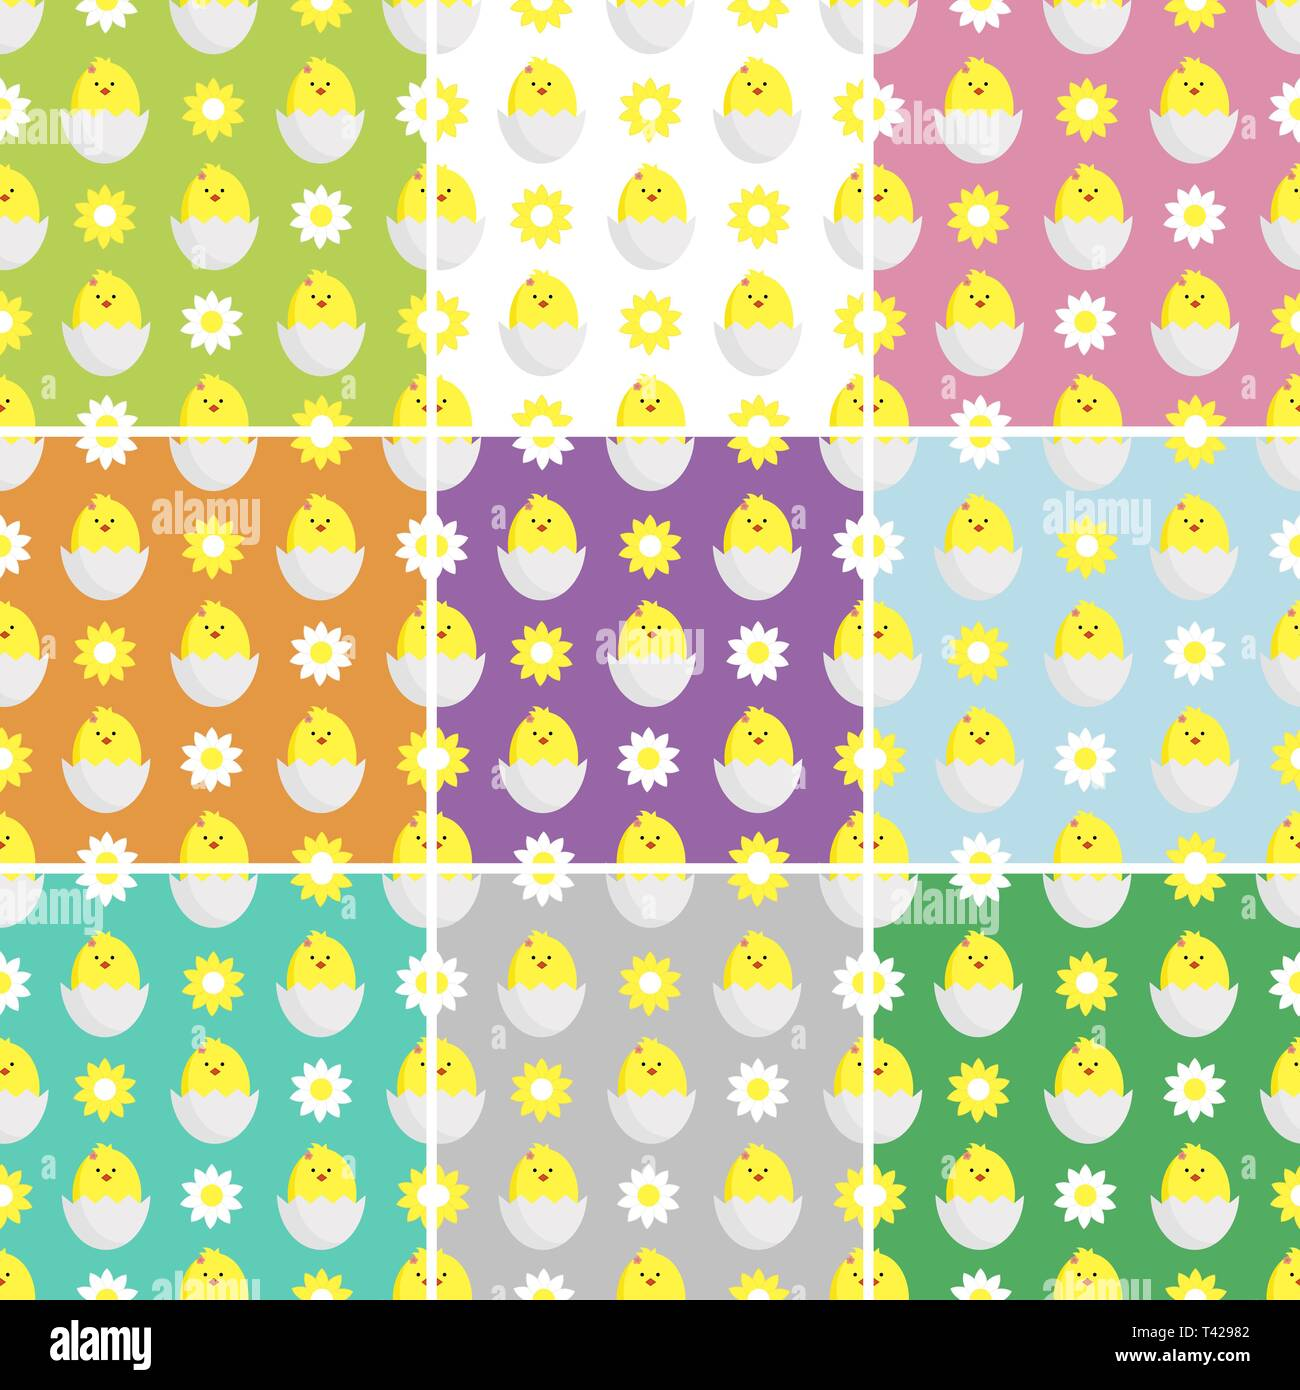 decorating textiles, packaging and wallpapers for children. set seamless vector illustration with daisies,chamomile and chickens. - Stock Vector